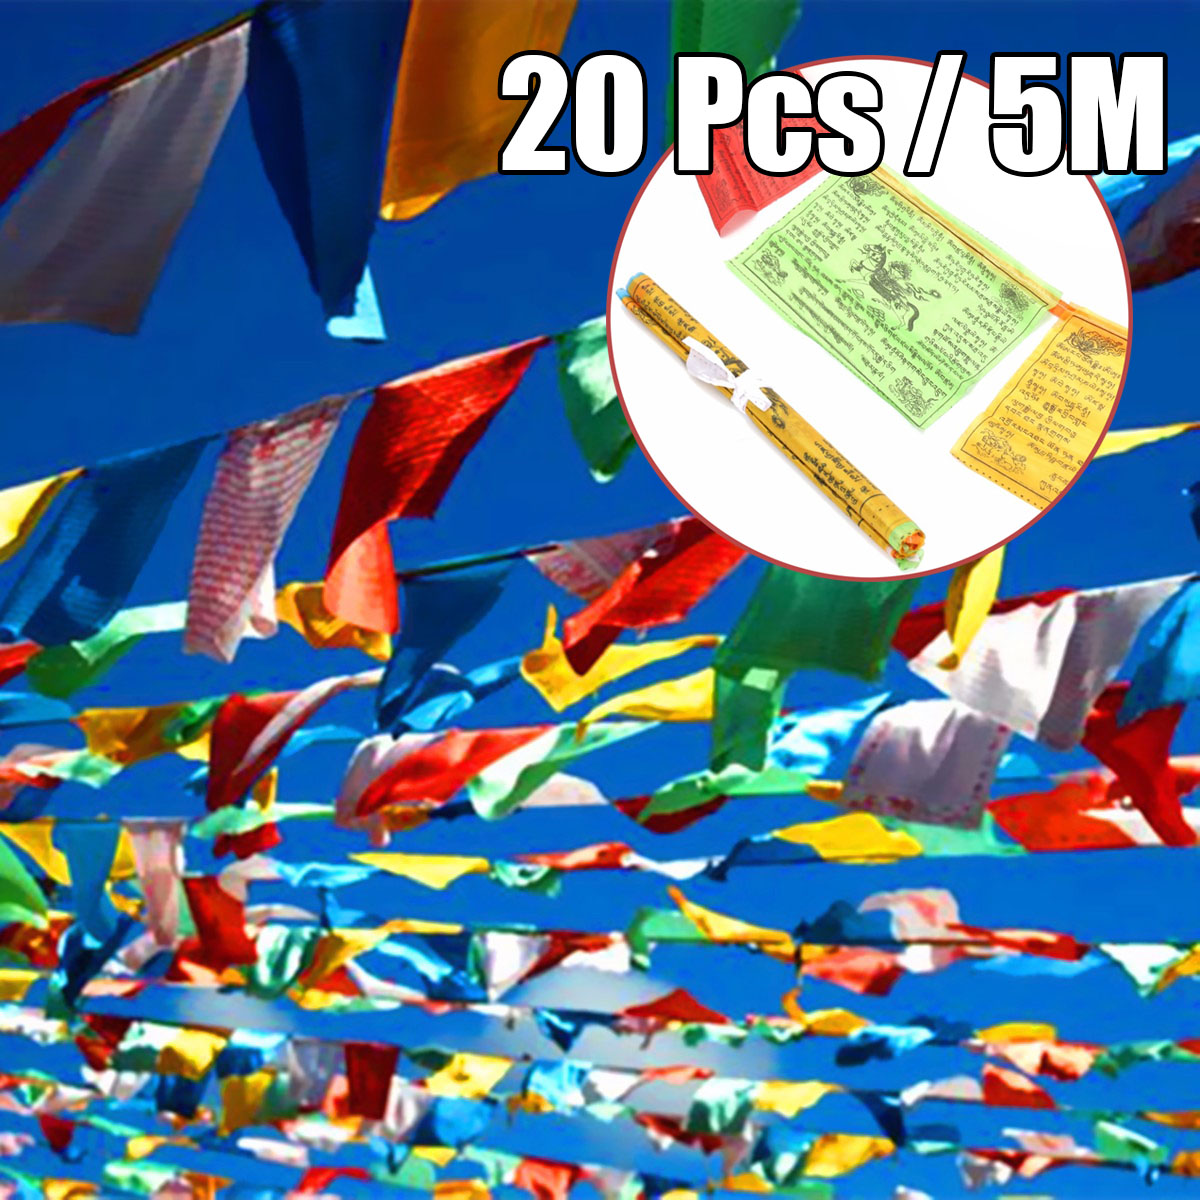 Details about Tibetan Buddhist Prayer Flag Contain 20 Flags 5 Meter  Scriptures Wind Horse Wall